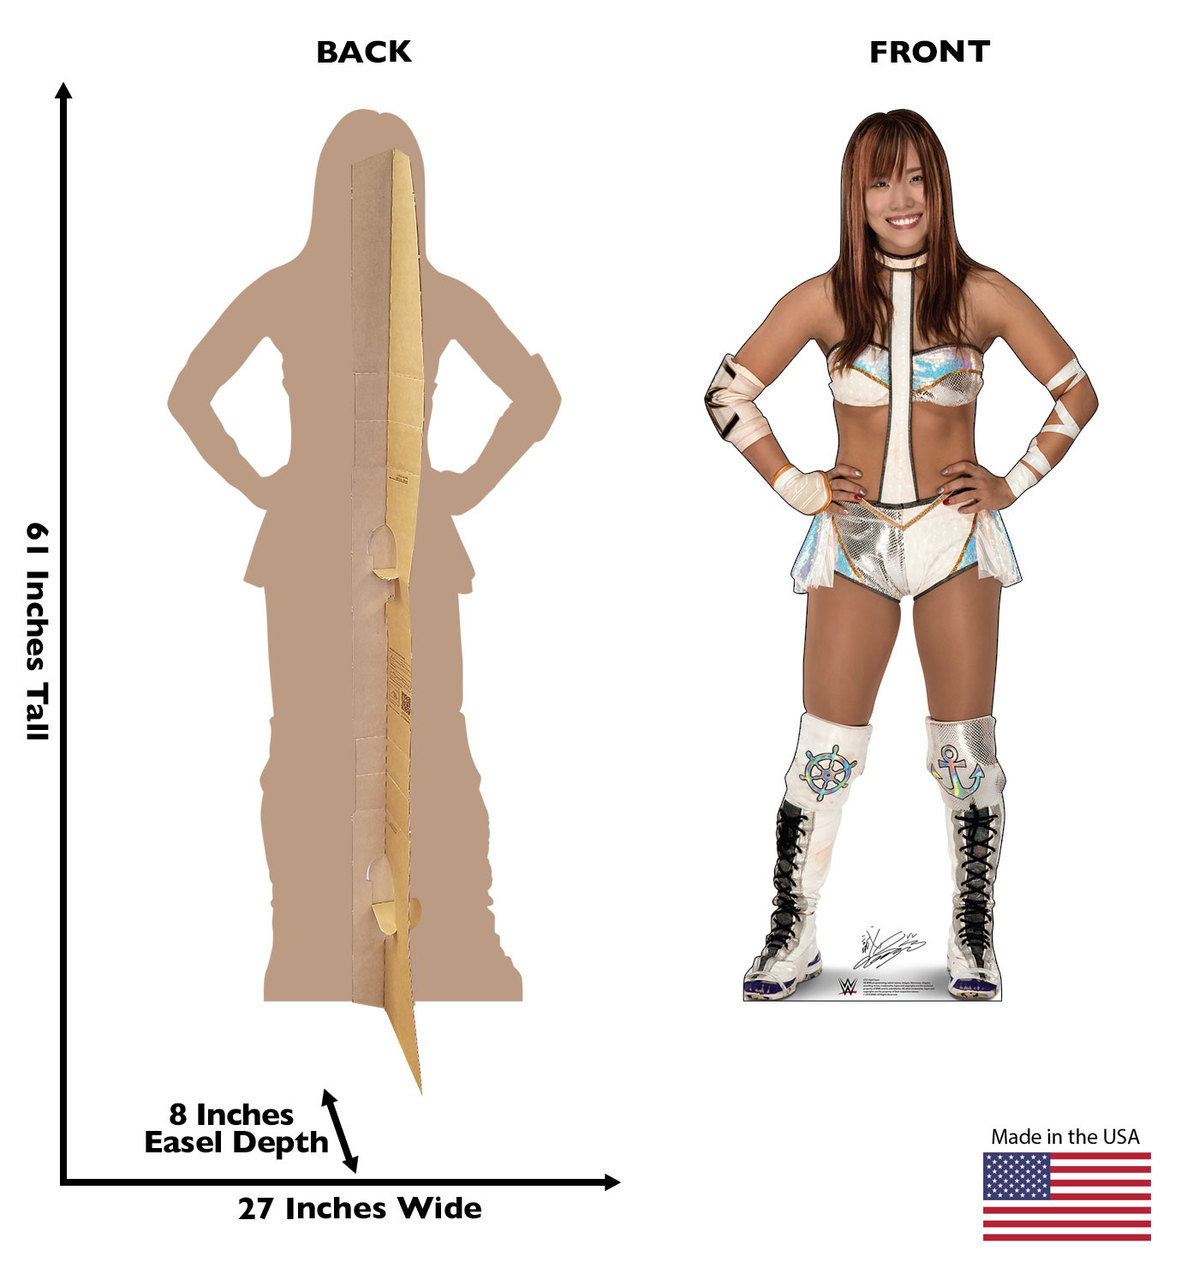 Kairi Sane Life-size cardboard standee front and back with dimensions.